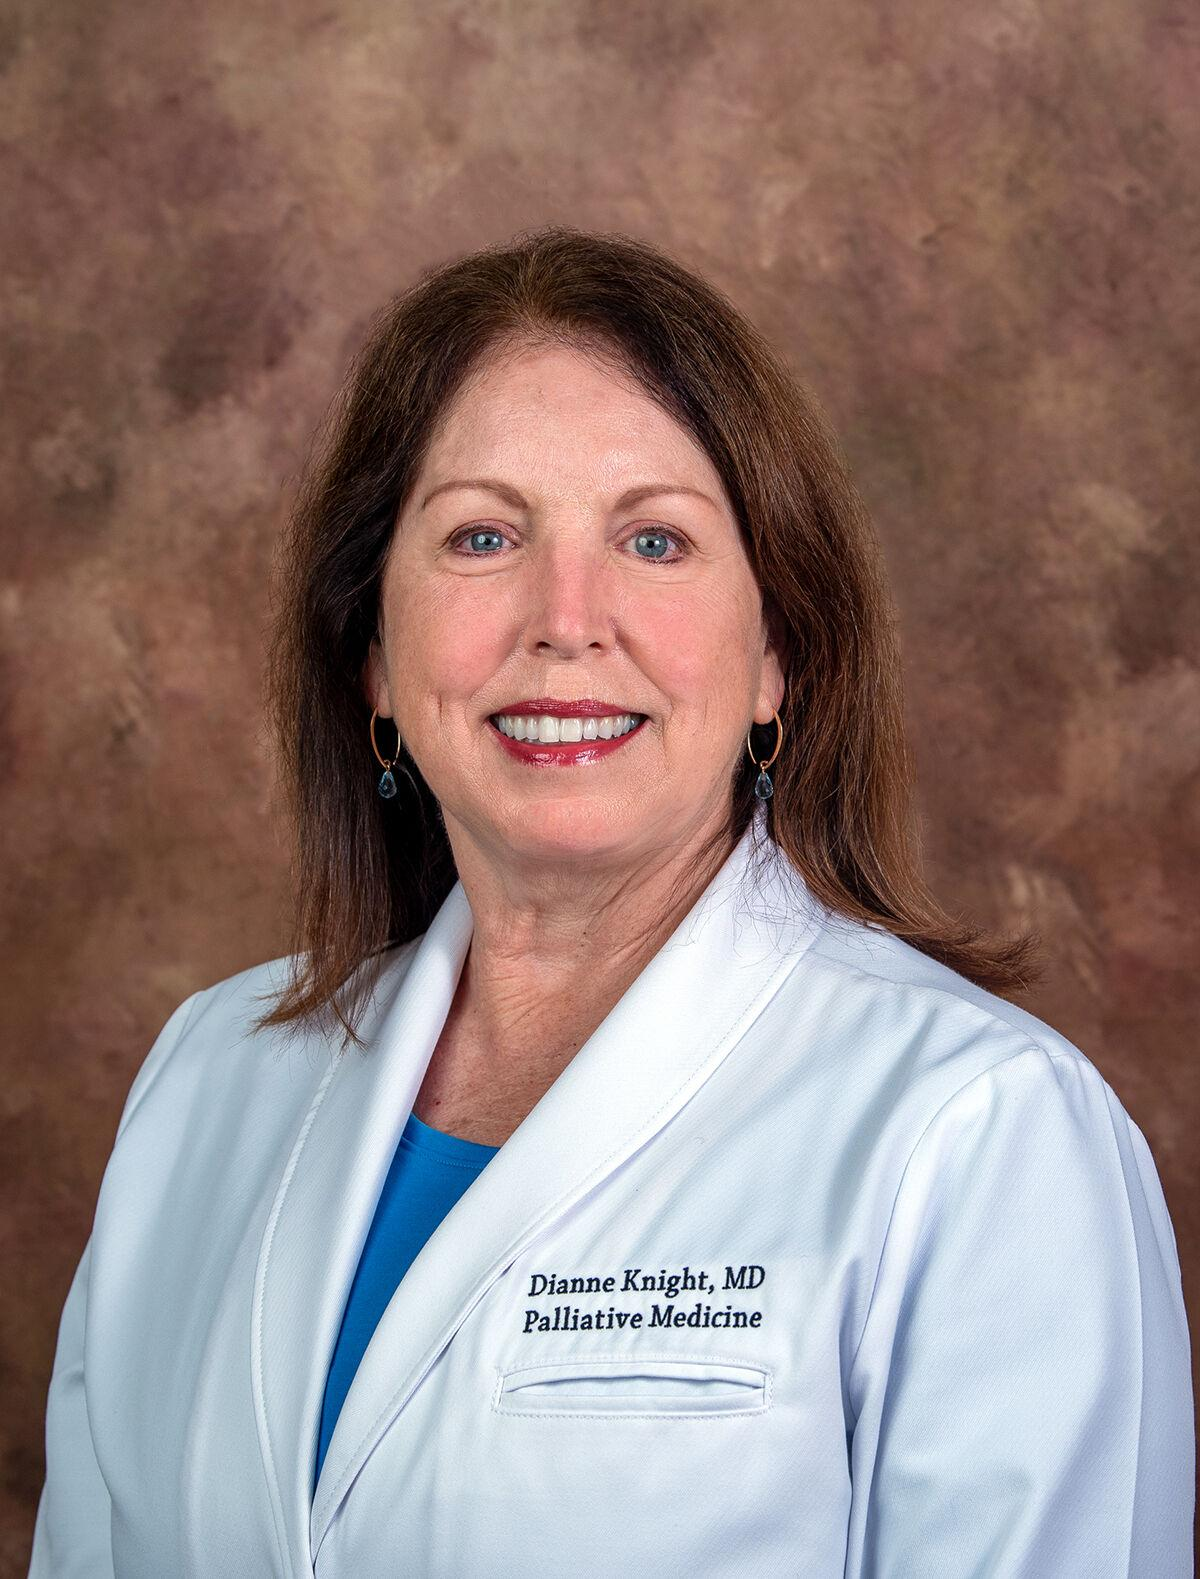 Dr. Dianne Knight